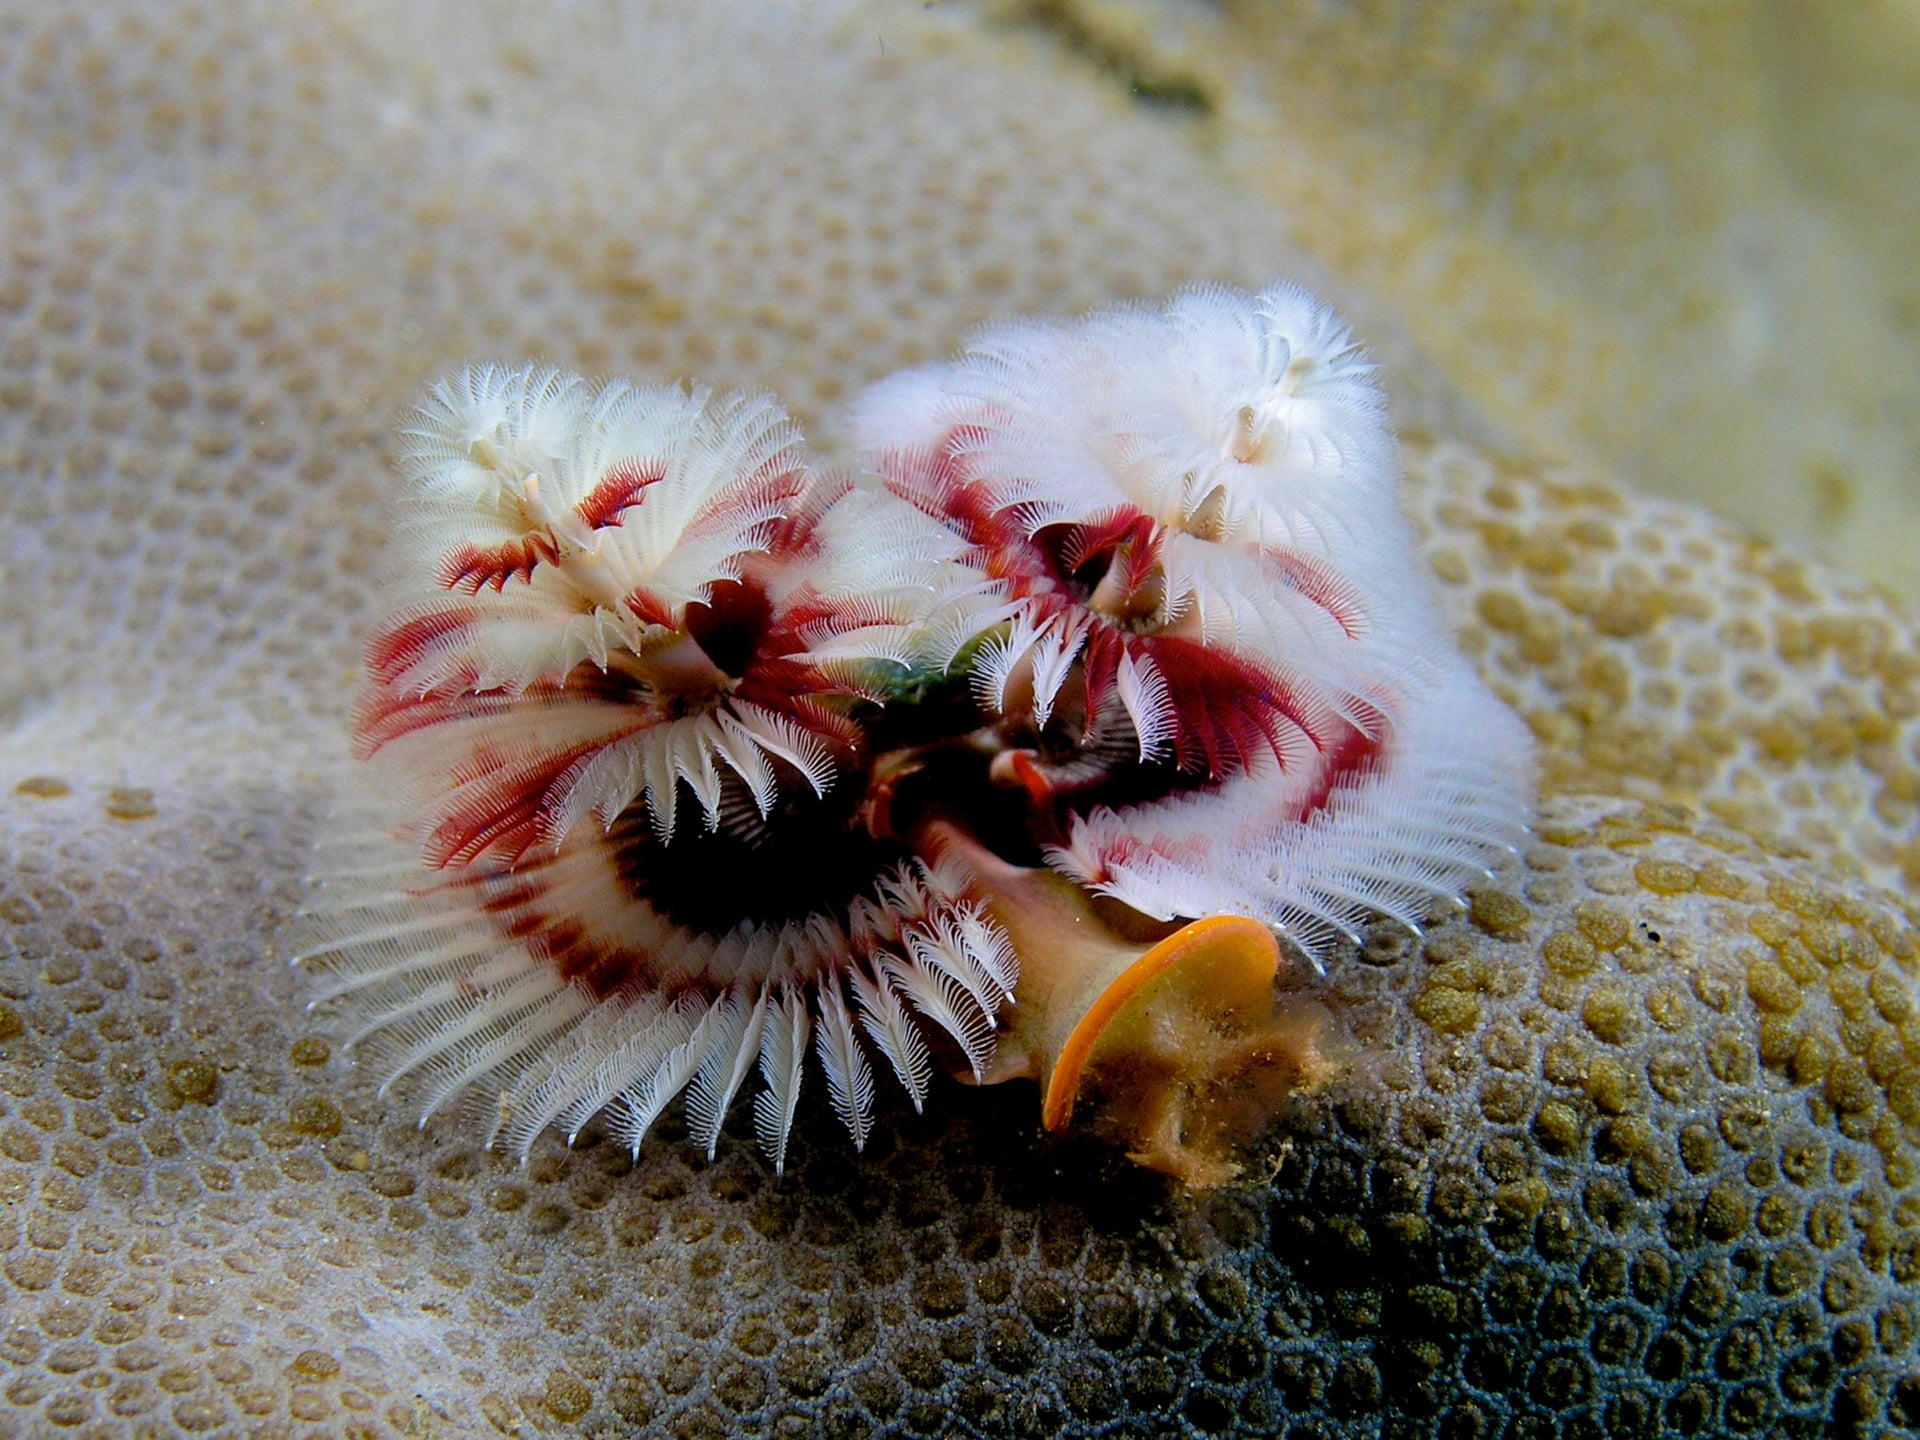 Spirobranchus giganteus, commonly known as Christmas tree worms